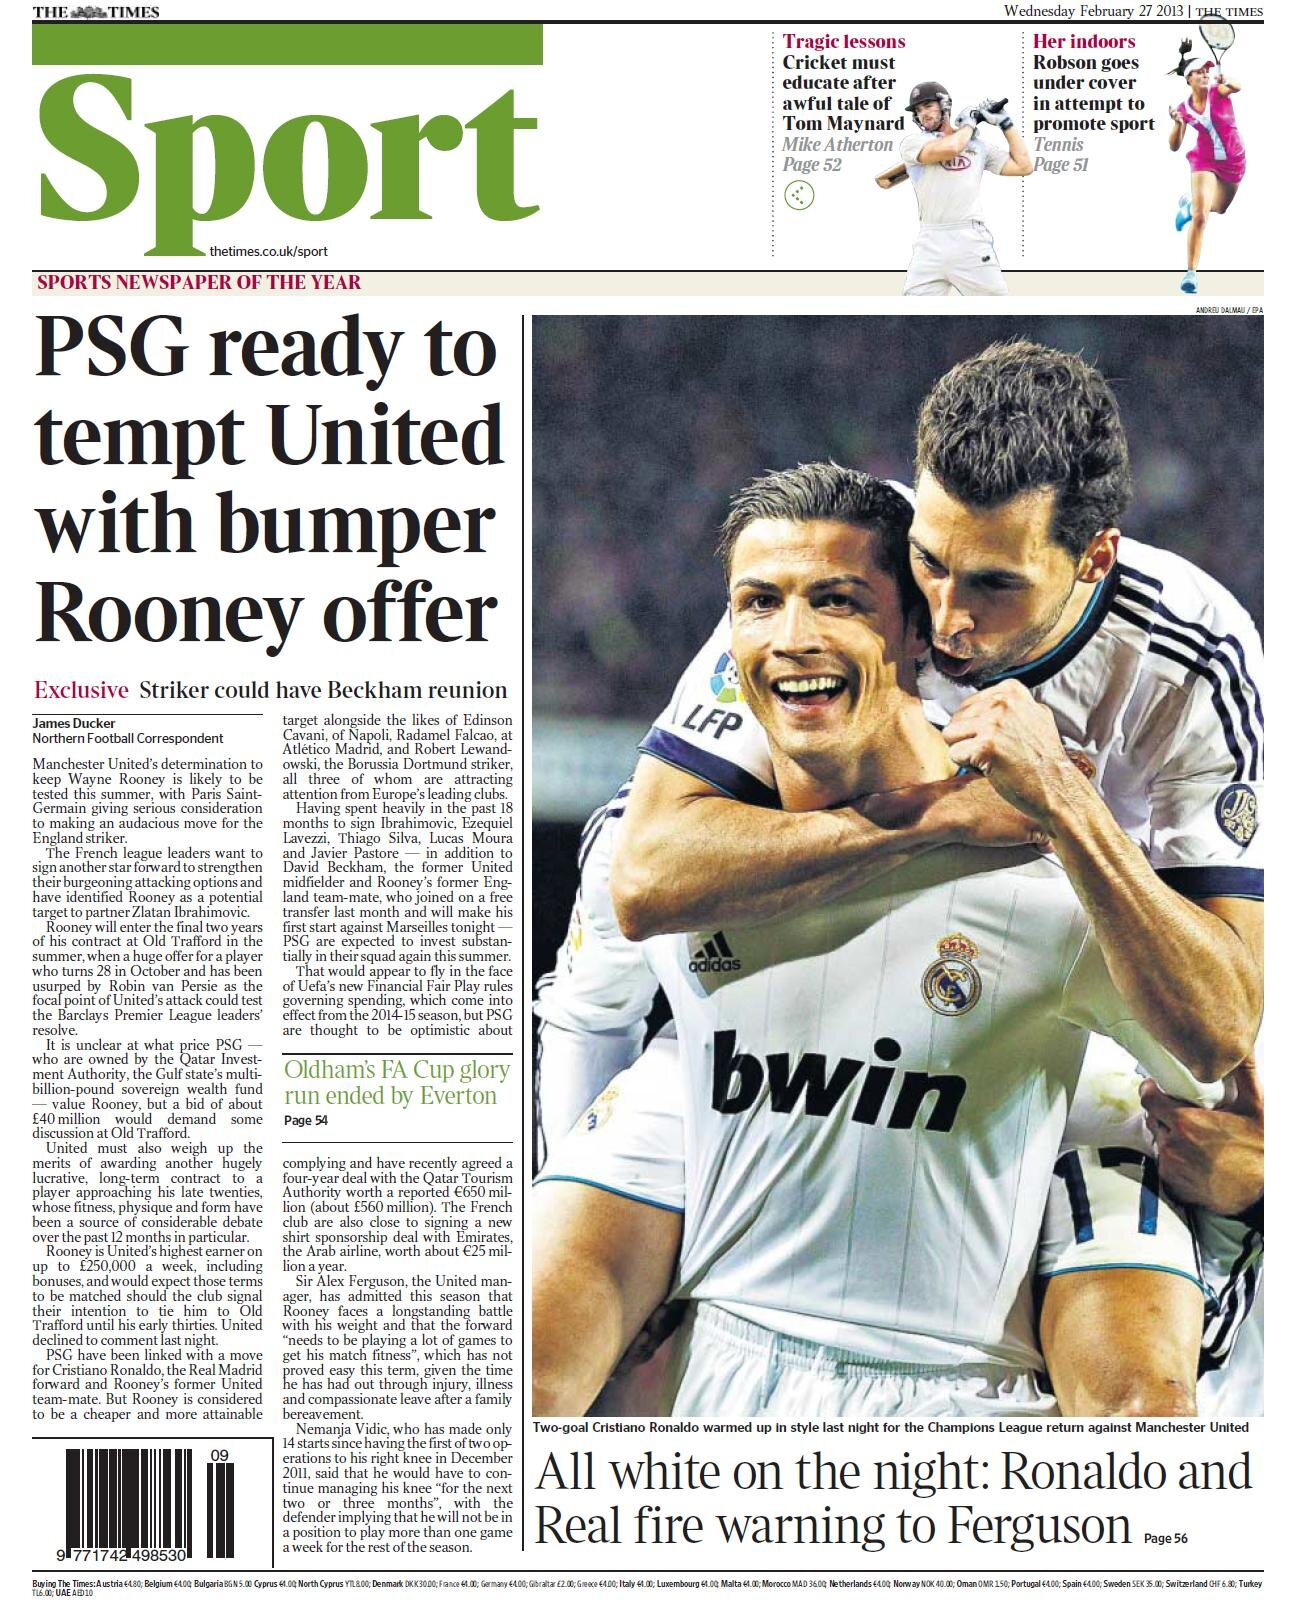 The Times: PSG want £40m Wayne Rooney to leave Man United to partner with Zlatan Ibrahimovic